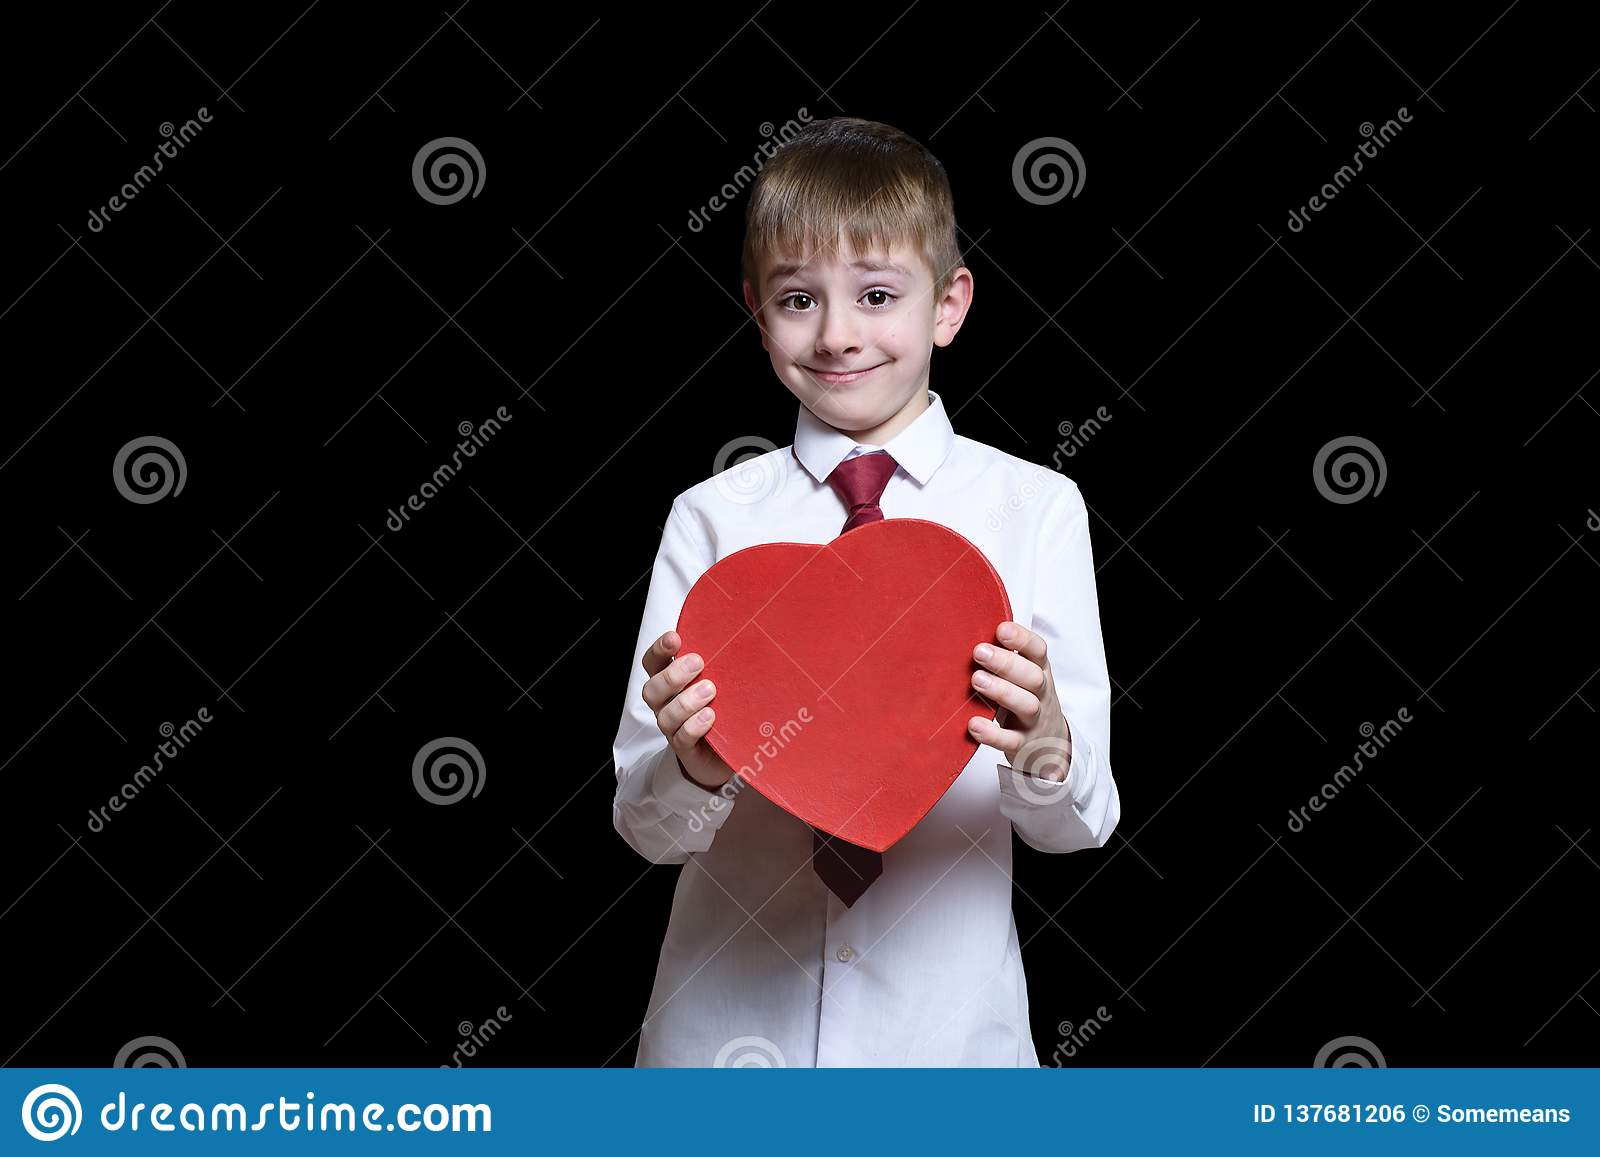 1d08f4235d8b Fair-haired boy in a shirt and tie holding a red heart shaped box. Love and  family concept. Isolate on black background.